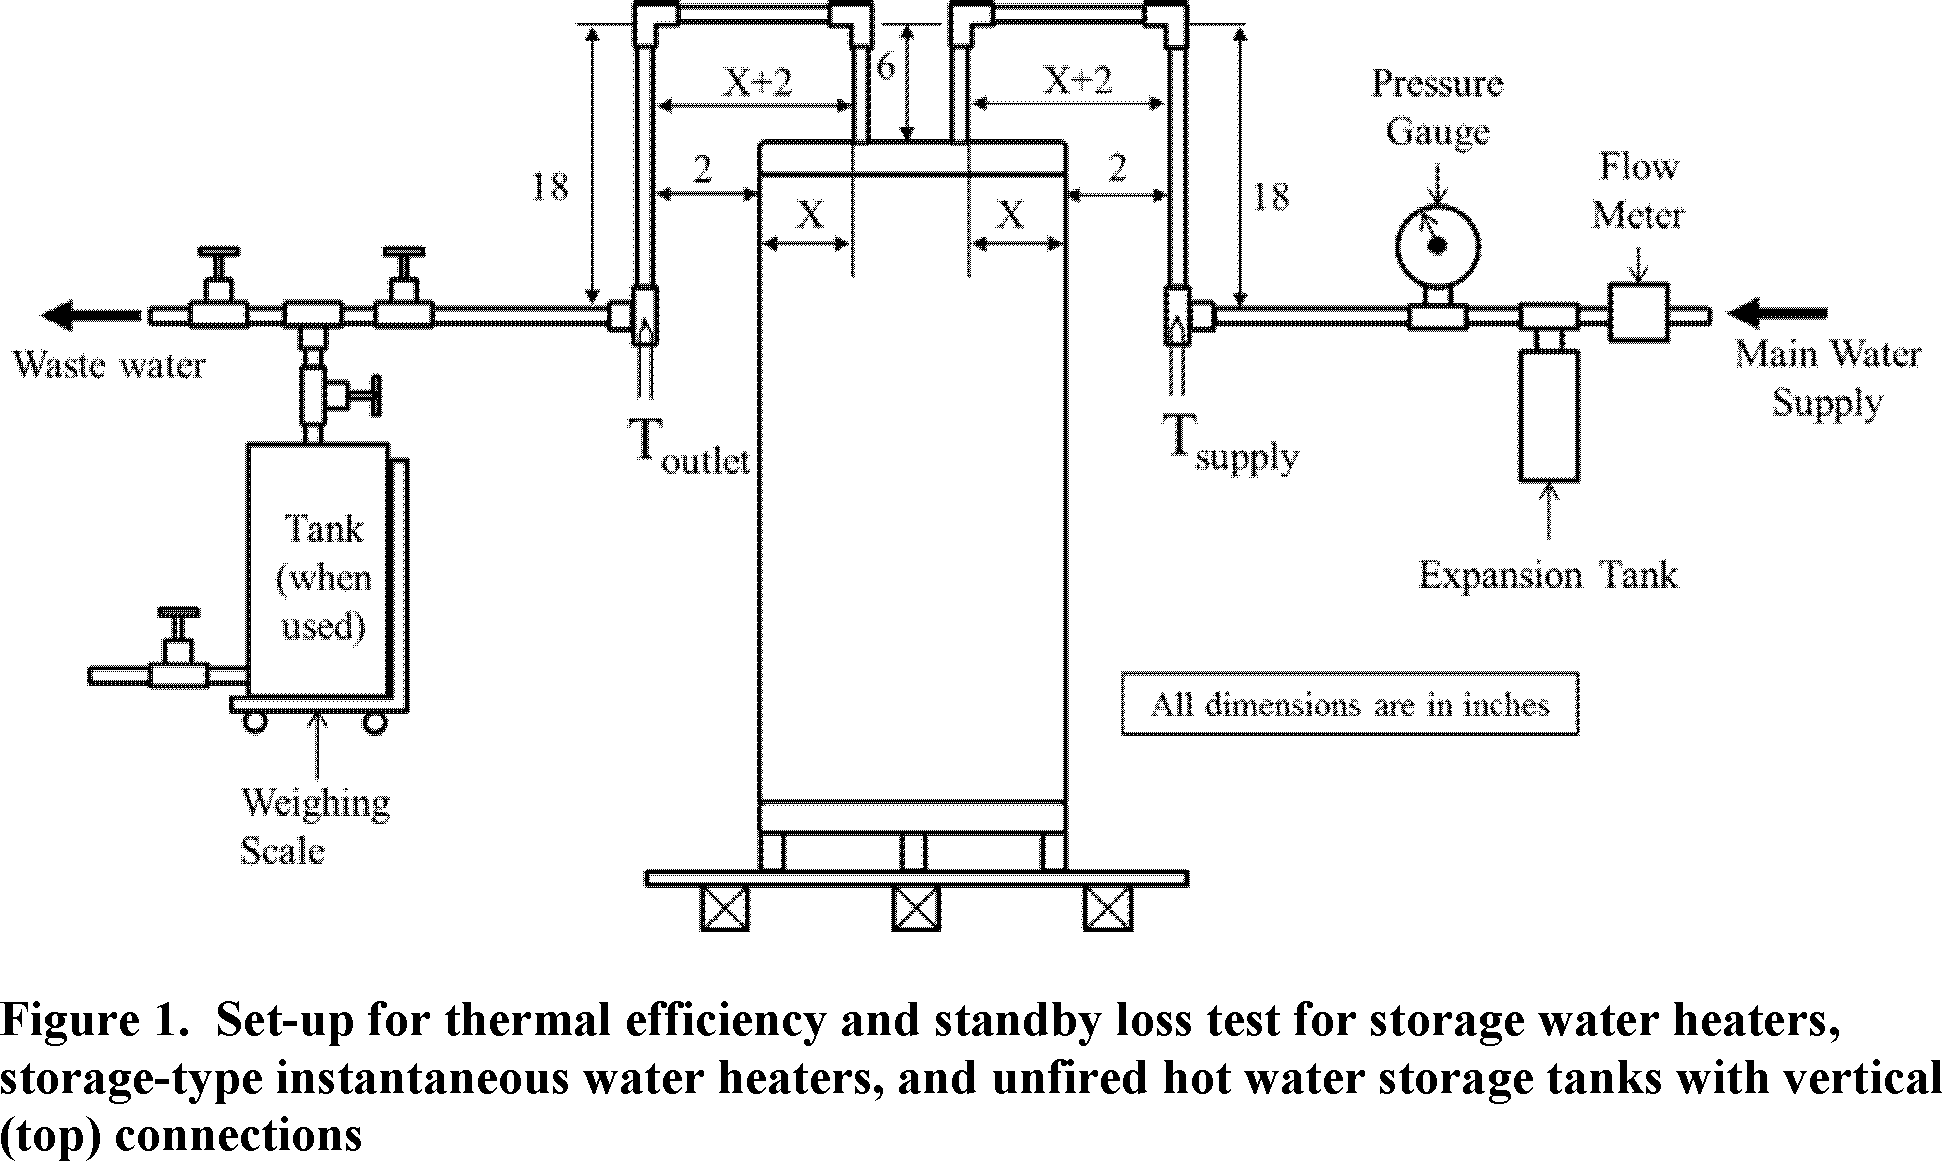 medium resolution of vertical hot water storage tank piping diagram wiring diagrams u2022 rh 17 eap ing de hot water heater plumbing diagram hot water heater plumbing diagram